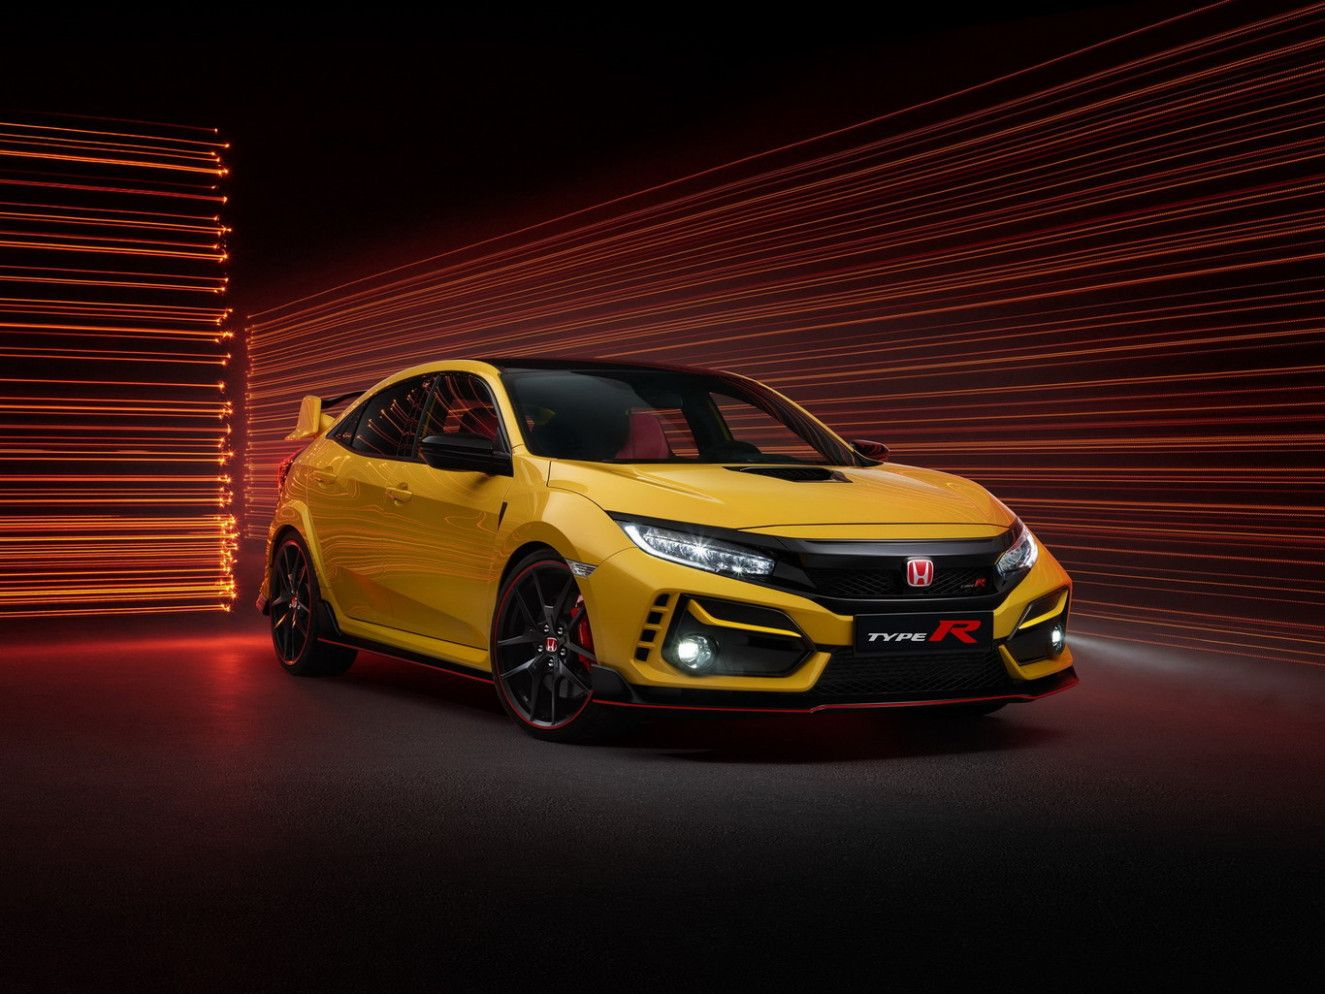 2021 Honda Civic Type R Wallpaper Honda Civic Honda Sarı